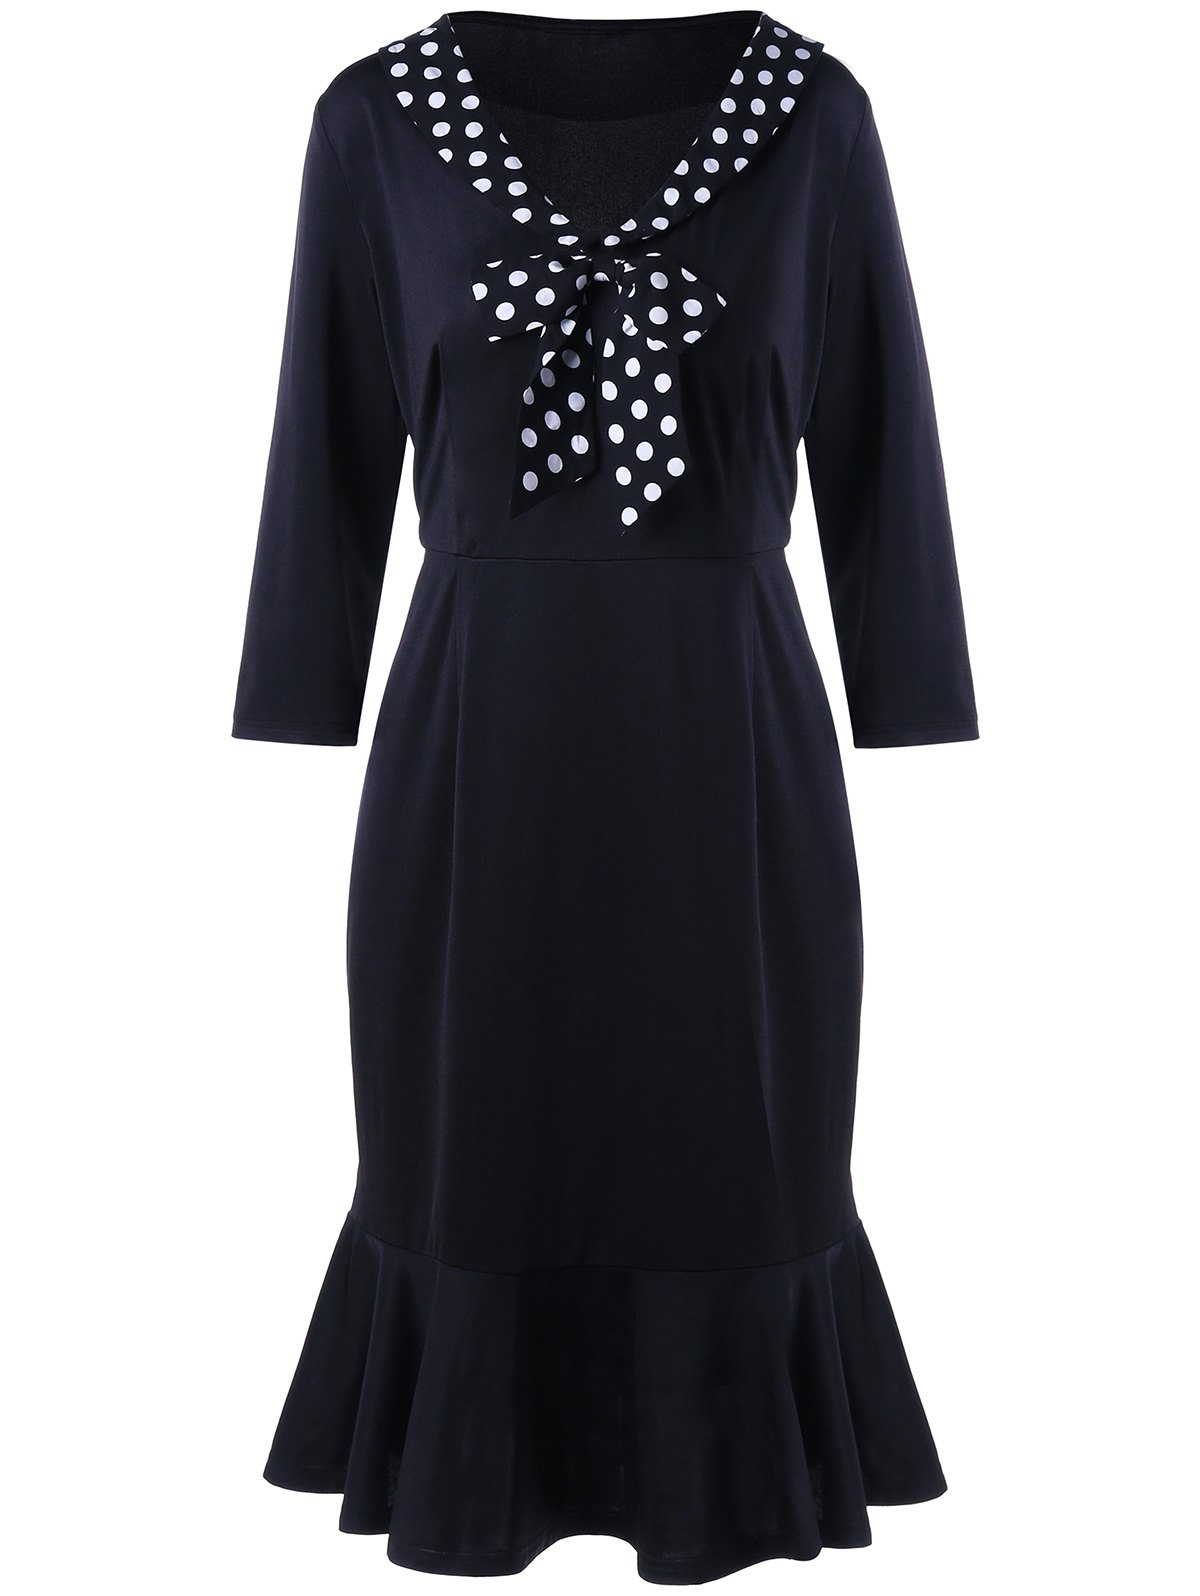 Polka Dot Insert Plus Size Fishtail DressWOMEN<br><br>Size: 5XL; Color: BLACK; Style: Brief; Material: Polyester,Spandex; Silhouette: Trumpet/Mermaid; Dresses Length: Knee-Length; Neckline: V-Neck; Sleeve Length: 3/4 Length Sleeves; Pattern Type: Polka Dot; With Belt: No; Season: Fall,Spring; Weight: 0.3870kg; Package Contents: 1 x Dress;